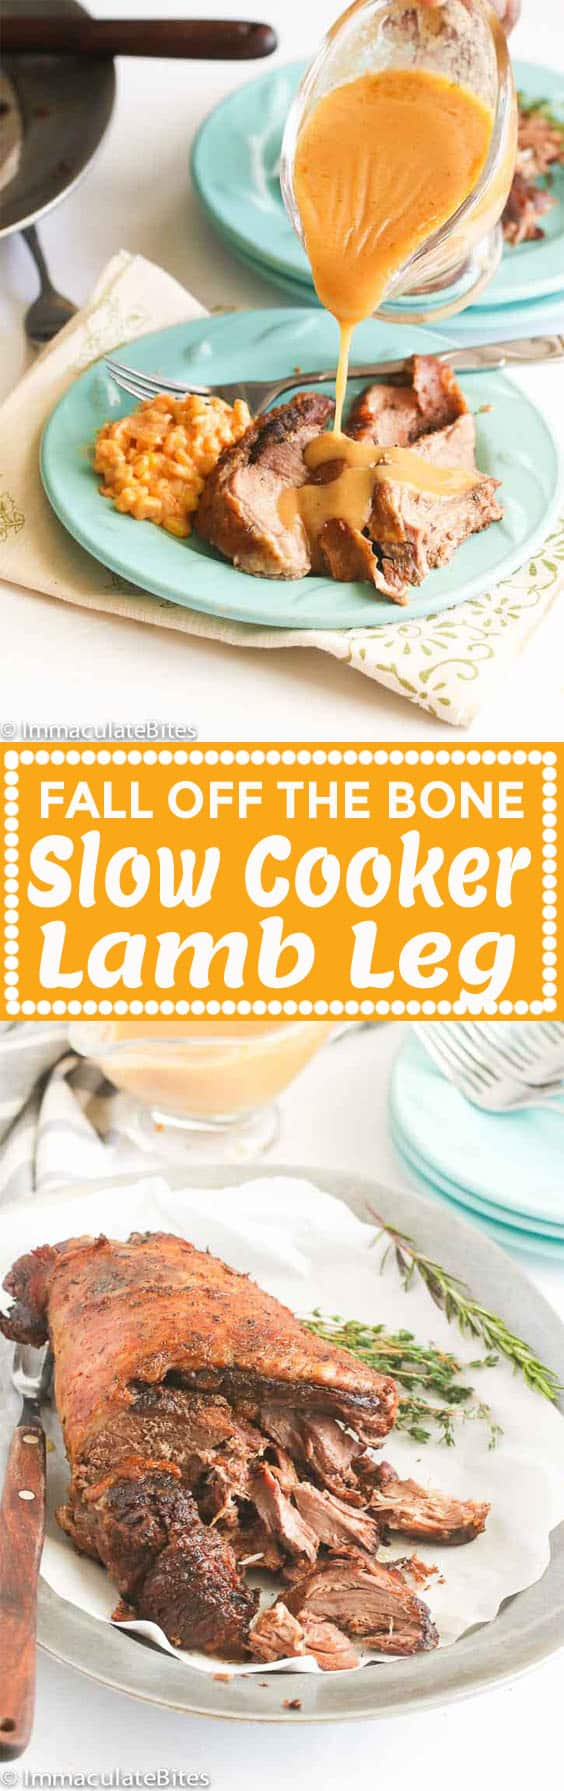 Slow Cooker Lamb Leg